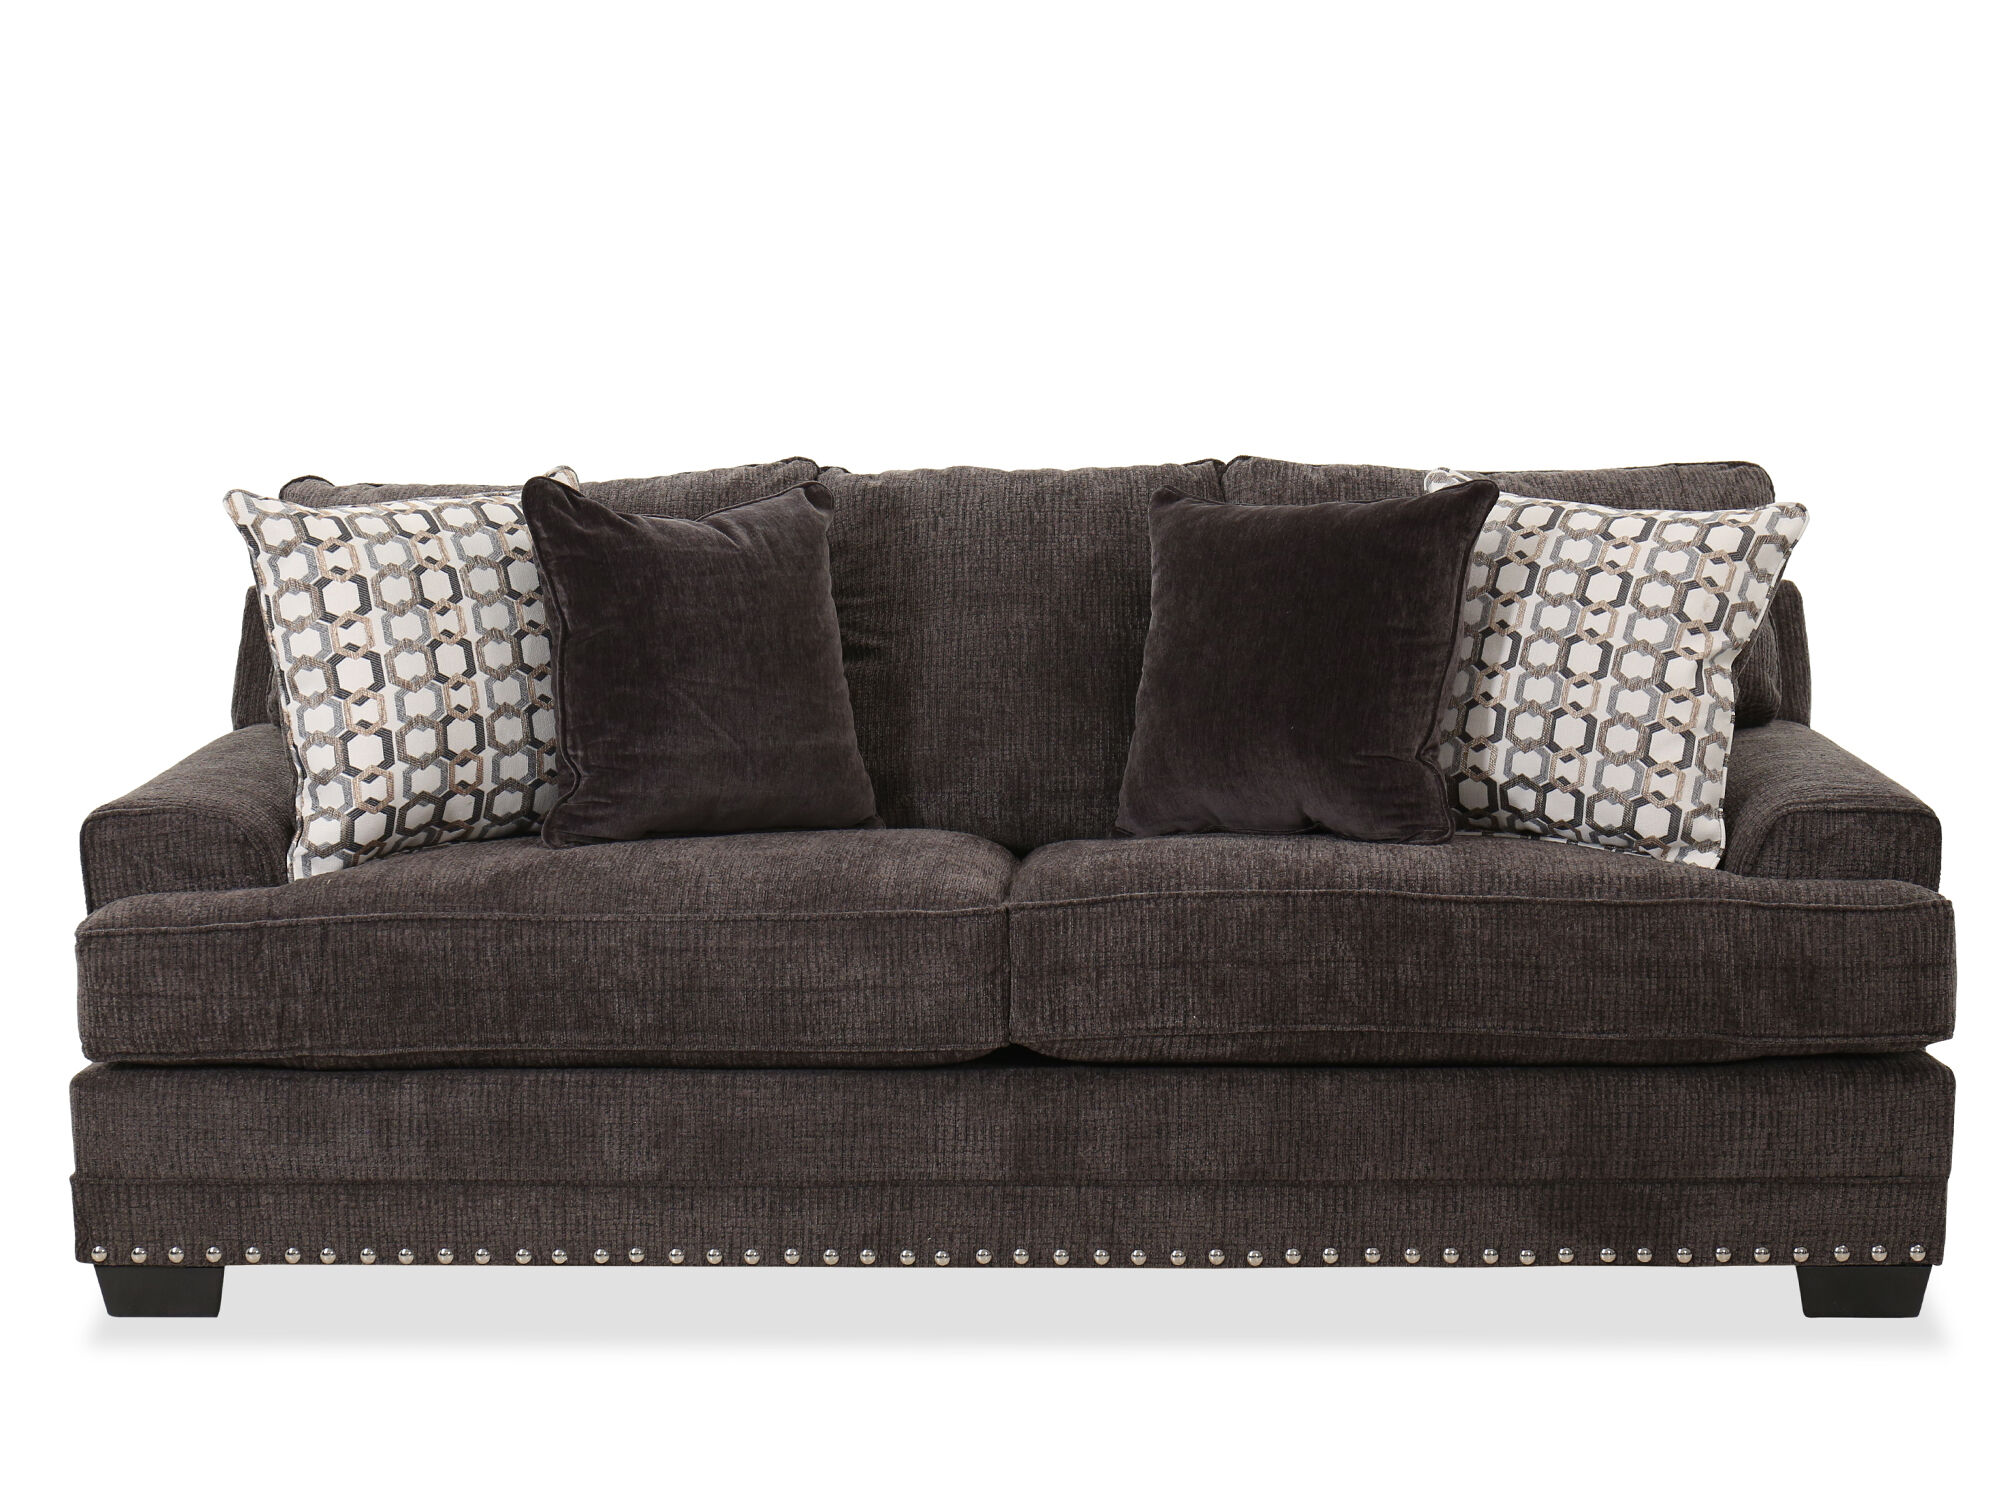 Nailhead-Accented Contemporary Sofa in Charcoal   Mathis Brothers ...